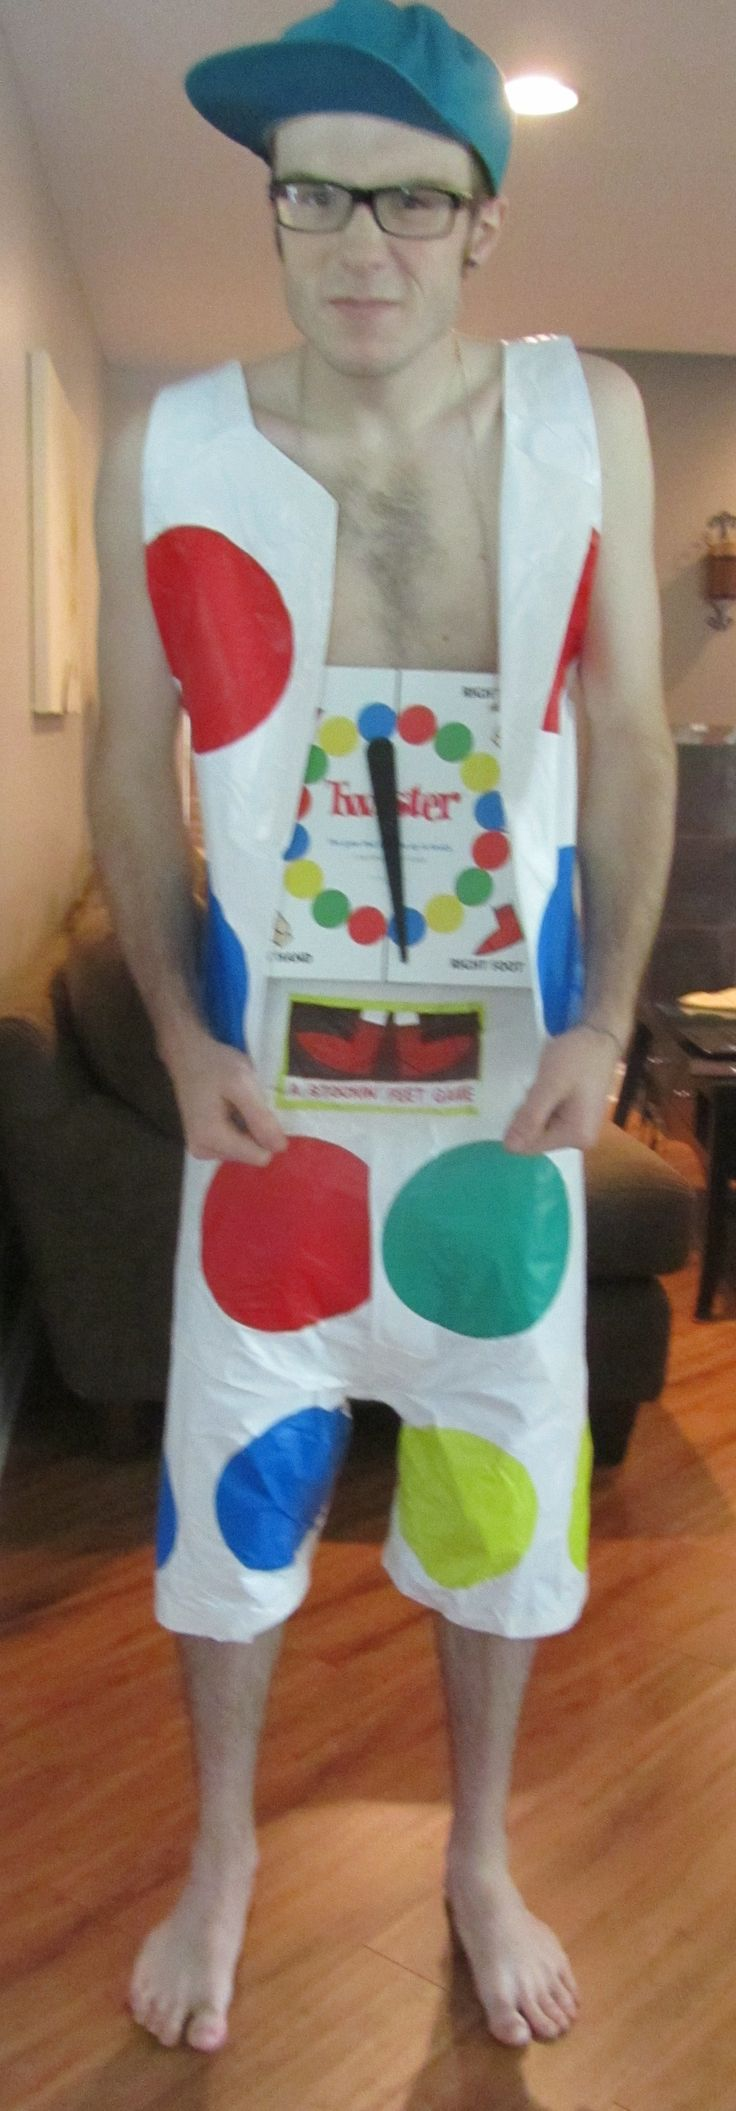 Best 25+ Abc costumes ideas on Pinterest | Abc party costumes, Abc ...